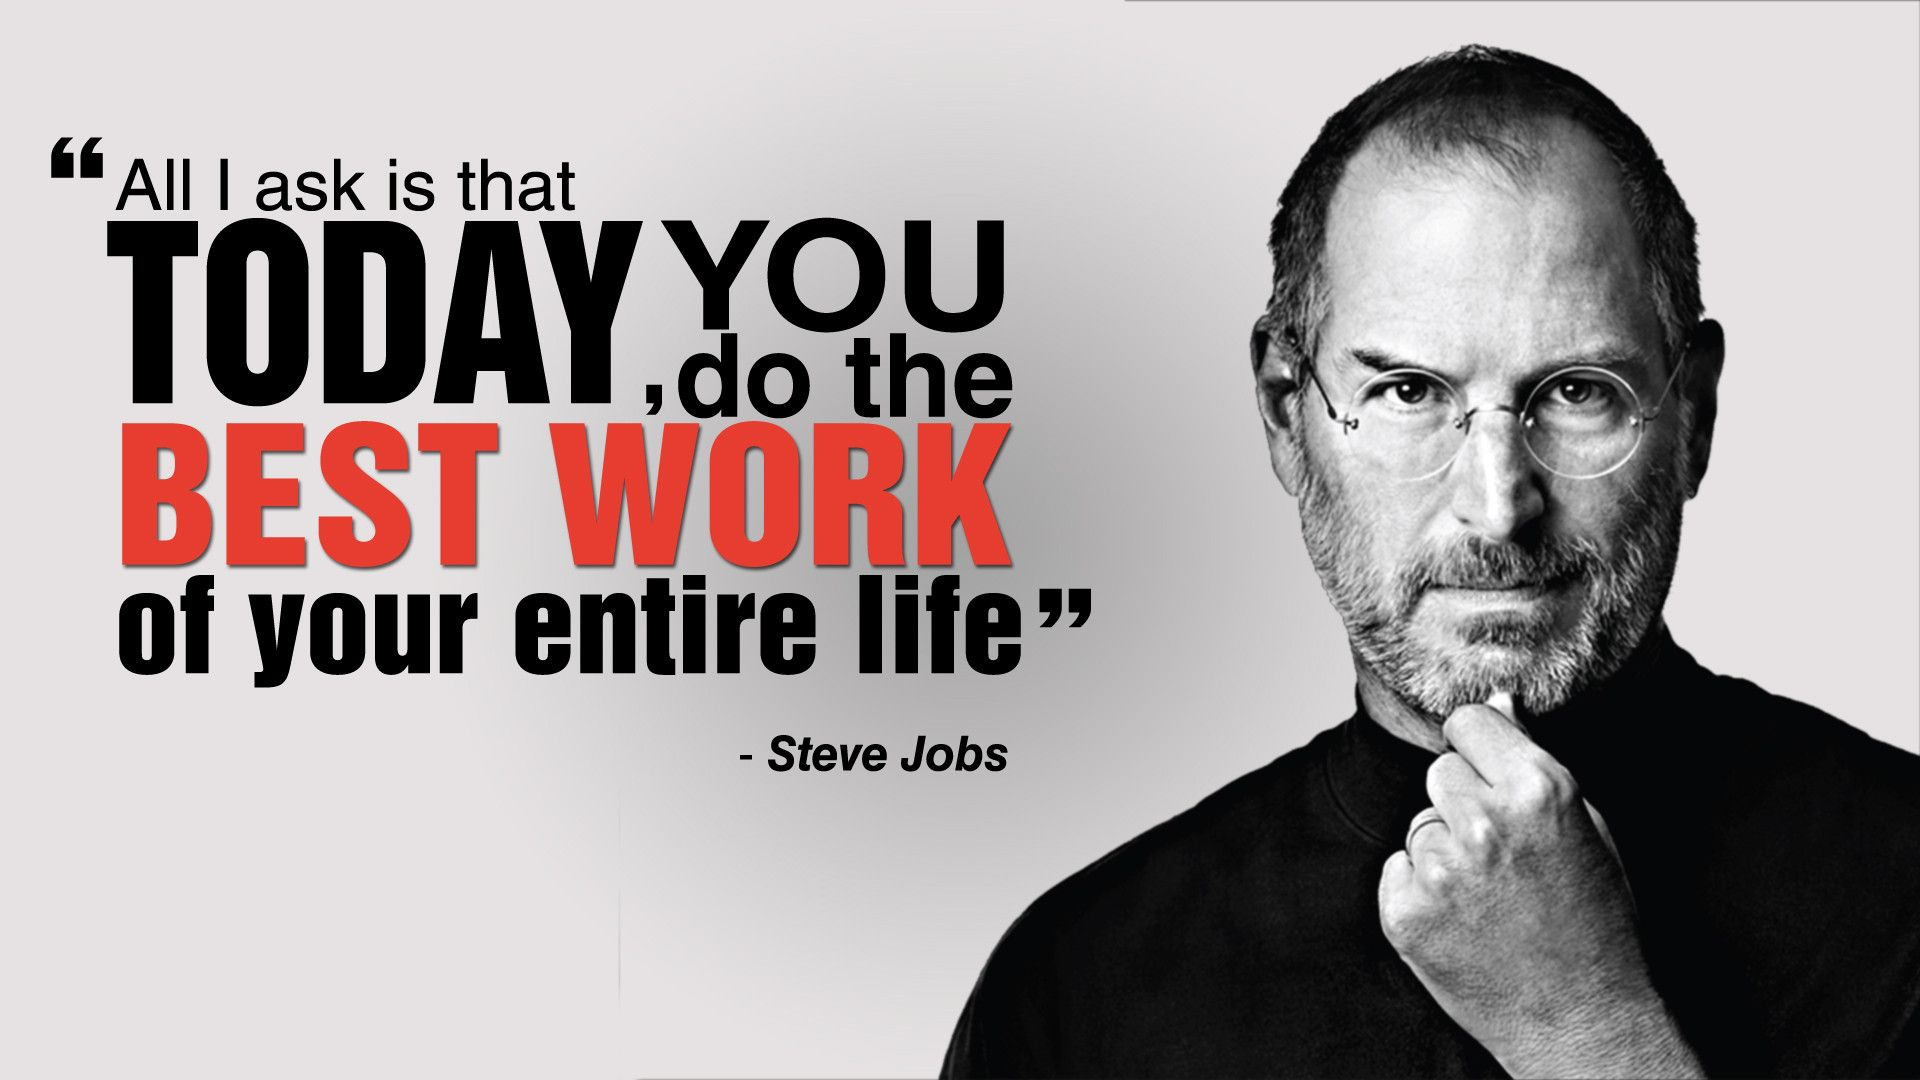 Steve Jobs Quotes Unique Images For  Steve Jobs Quotes On Work  Bottoms Upsandy J